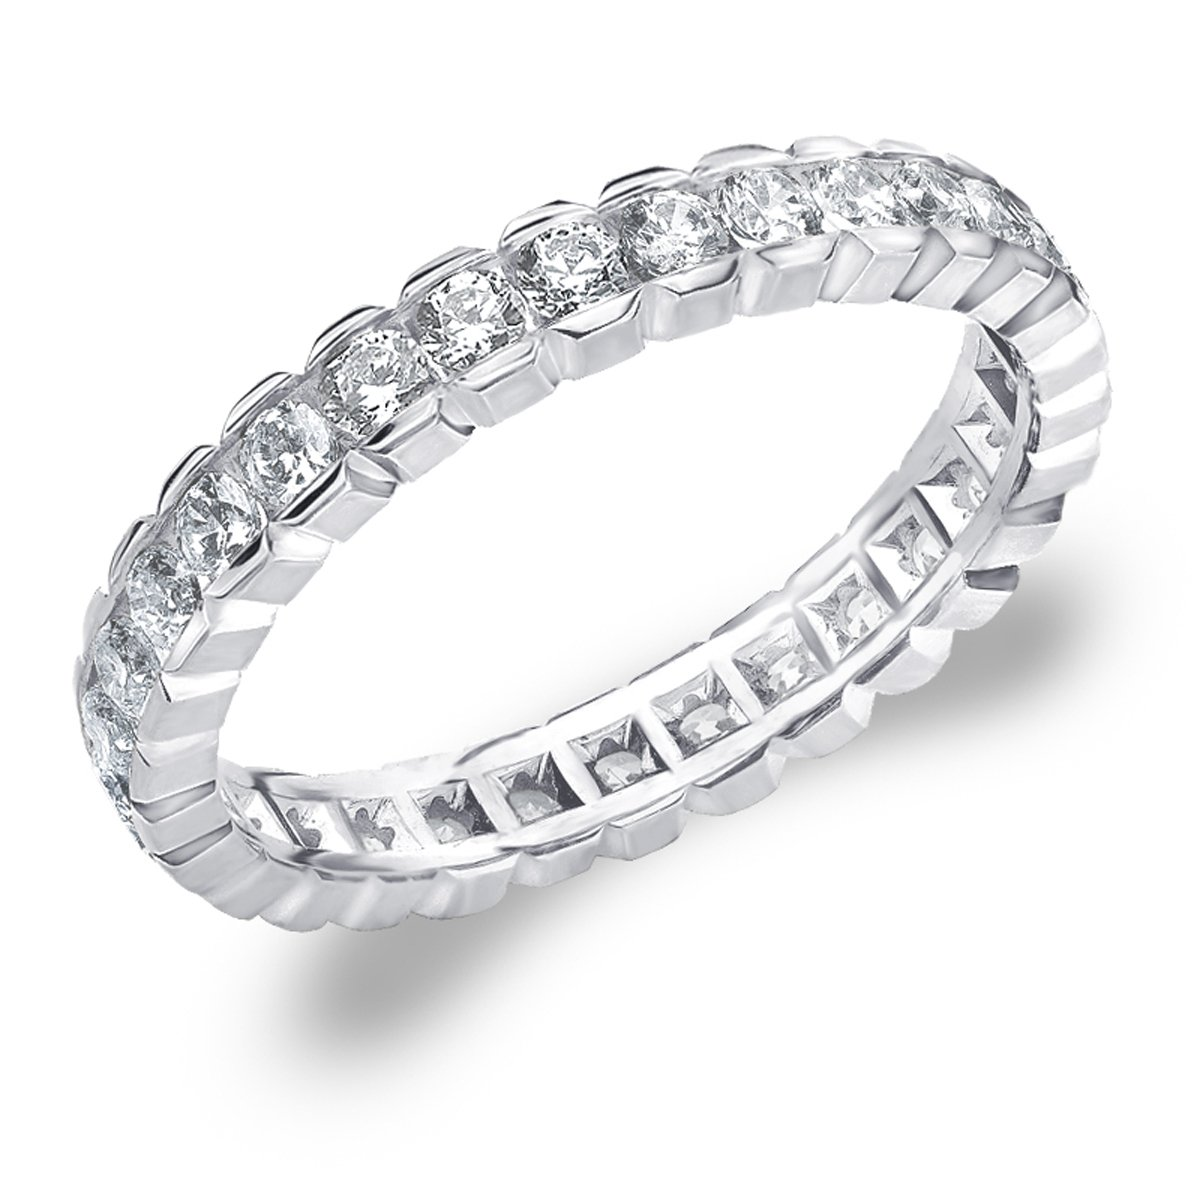 Eternity Wedding Bands 1.0 CTTW Diamond Eternity Ring, 1ct Wedding Anniversary Ring in 10K White Gold - Finger Size 9